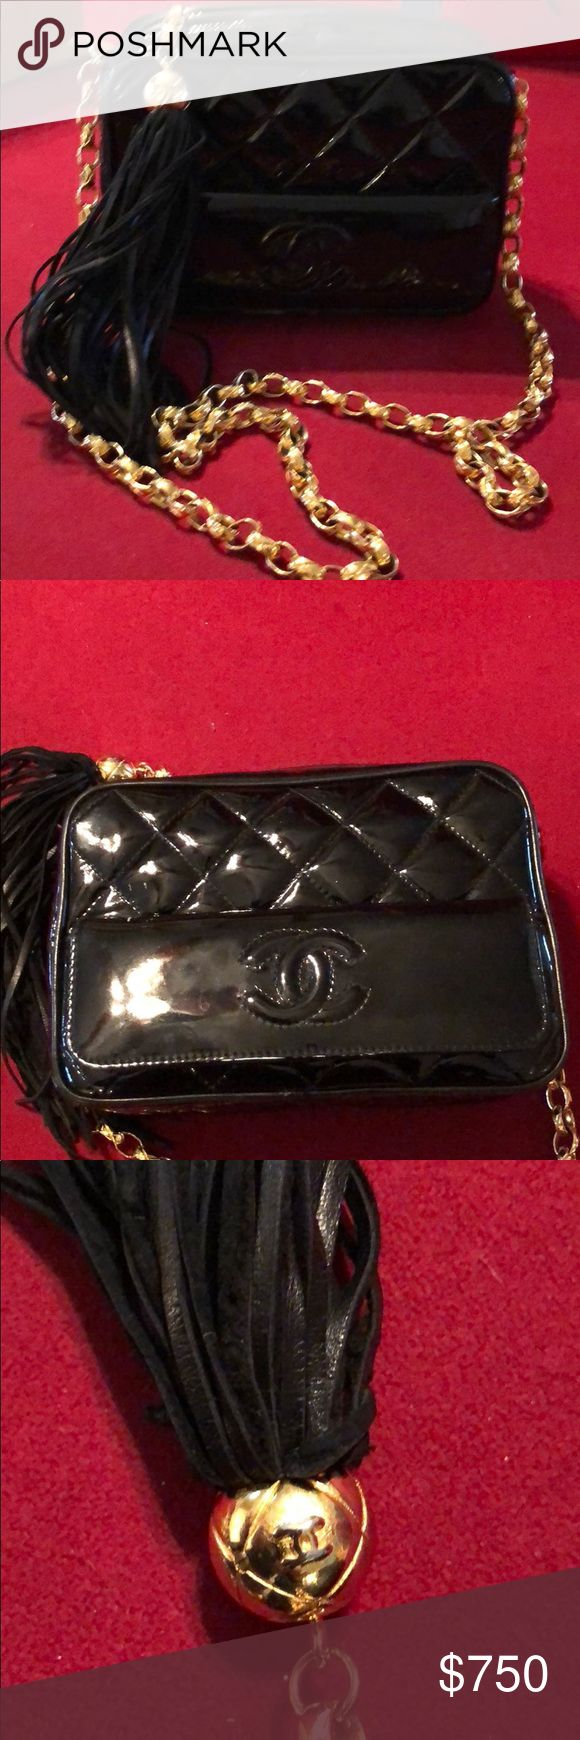 CHANEL Black patent leather/Gold shoulder bag Very nice condition; Classic Chanel diamond quilted patent leather black. CHANEL Bags Shoulder Bags